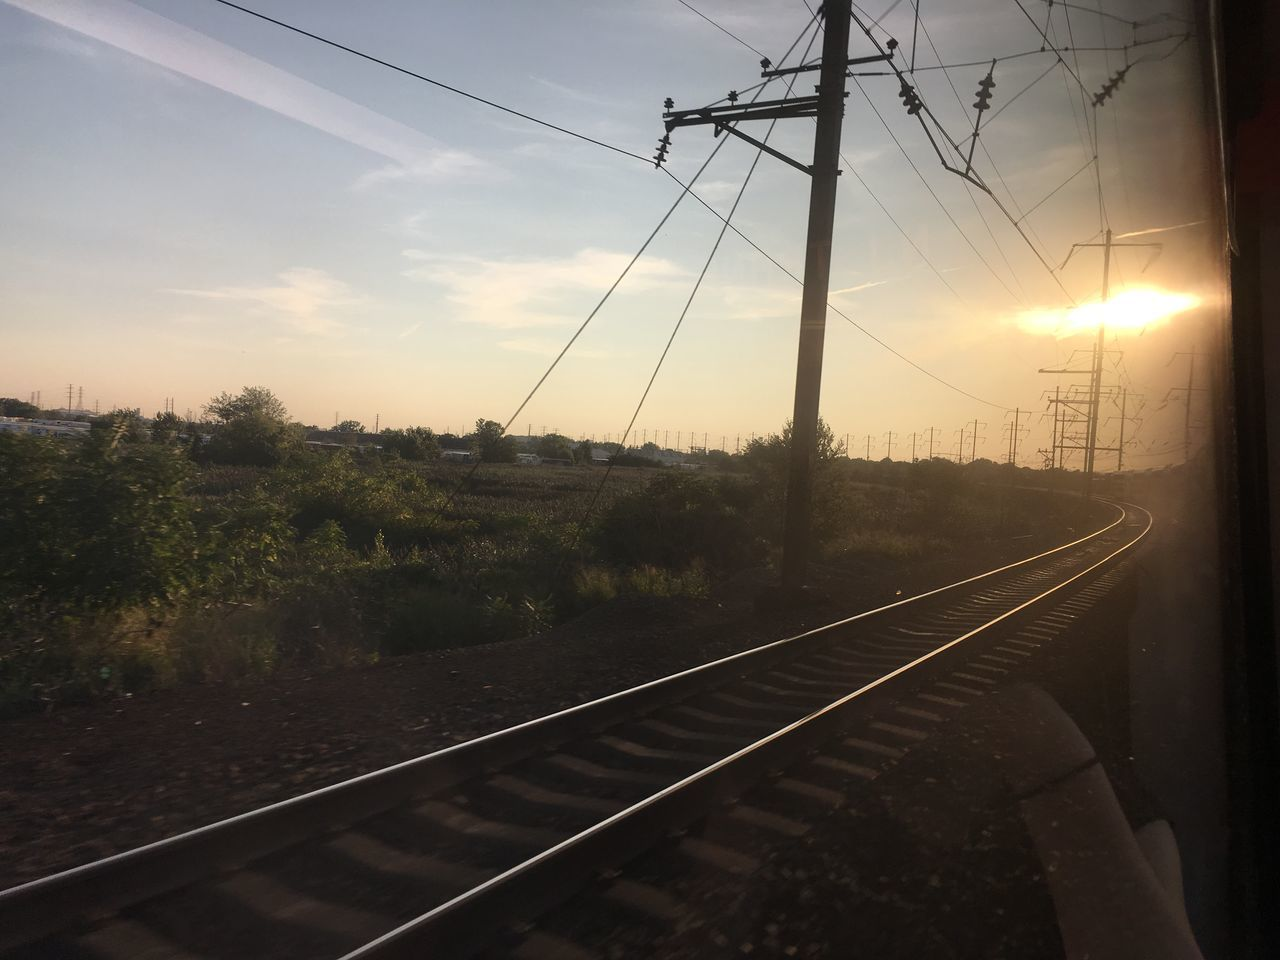 cable, transportation, connection, railroad track, rail transportation, sky, power line, electricity, no people, power supply, electricity pylon, sunset, tree, outdoors, nature, day, landscape, technology